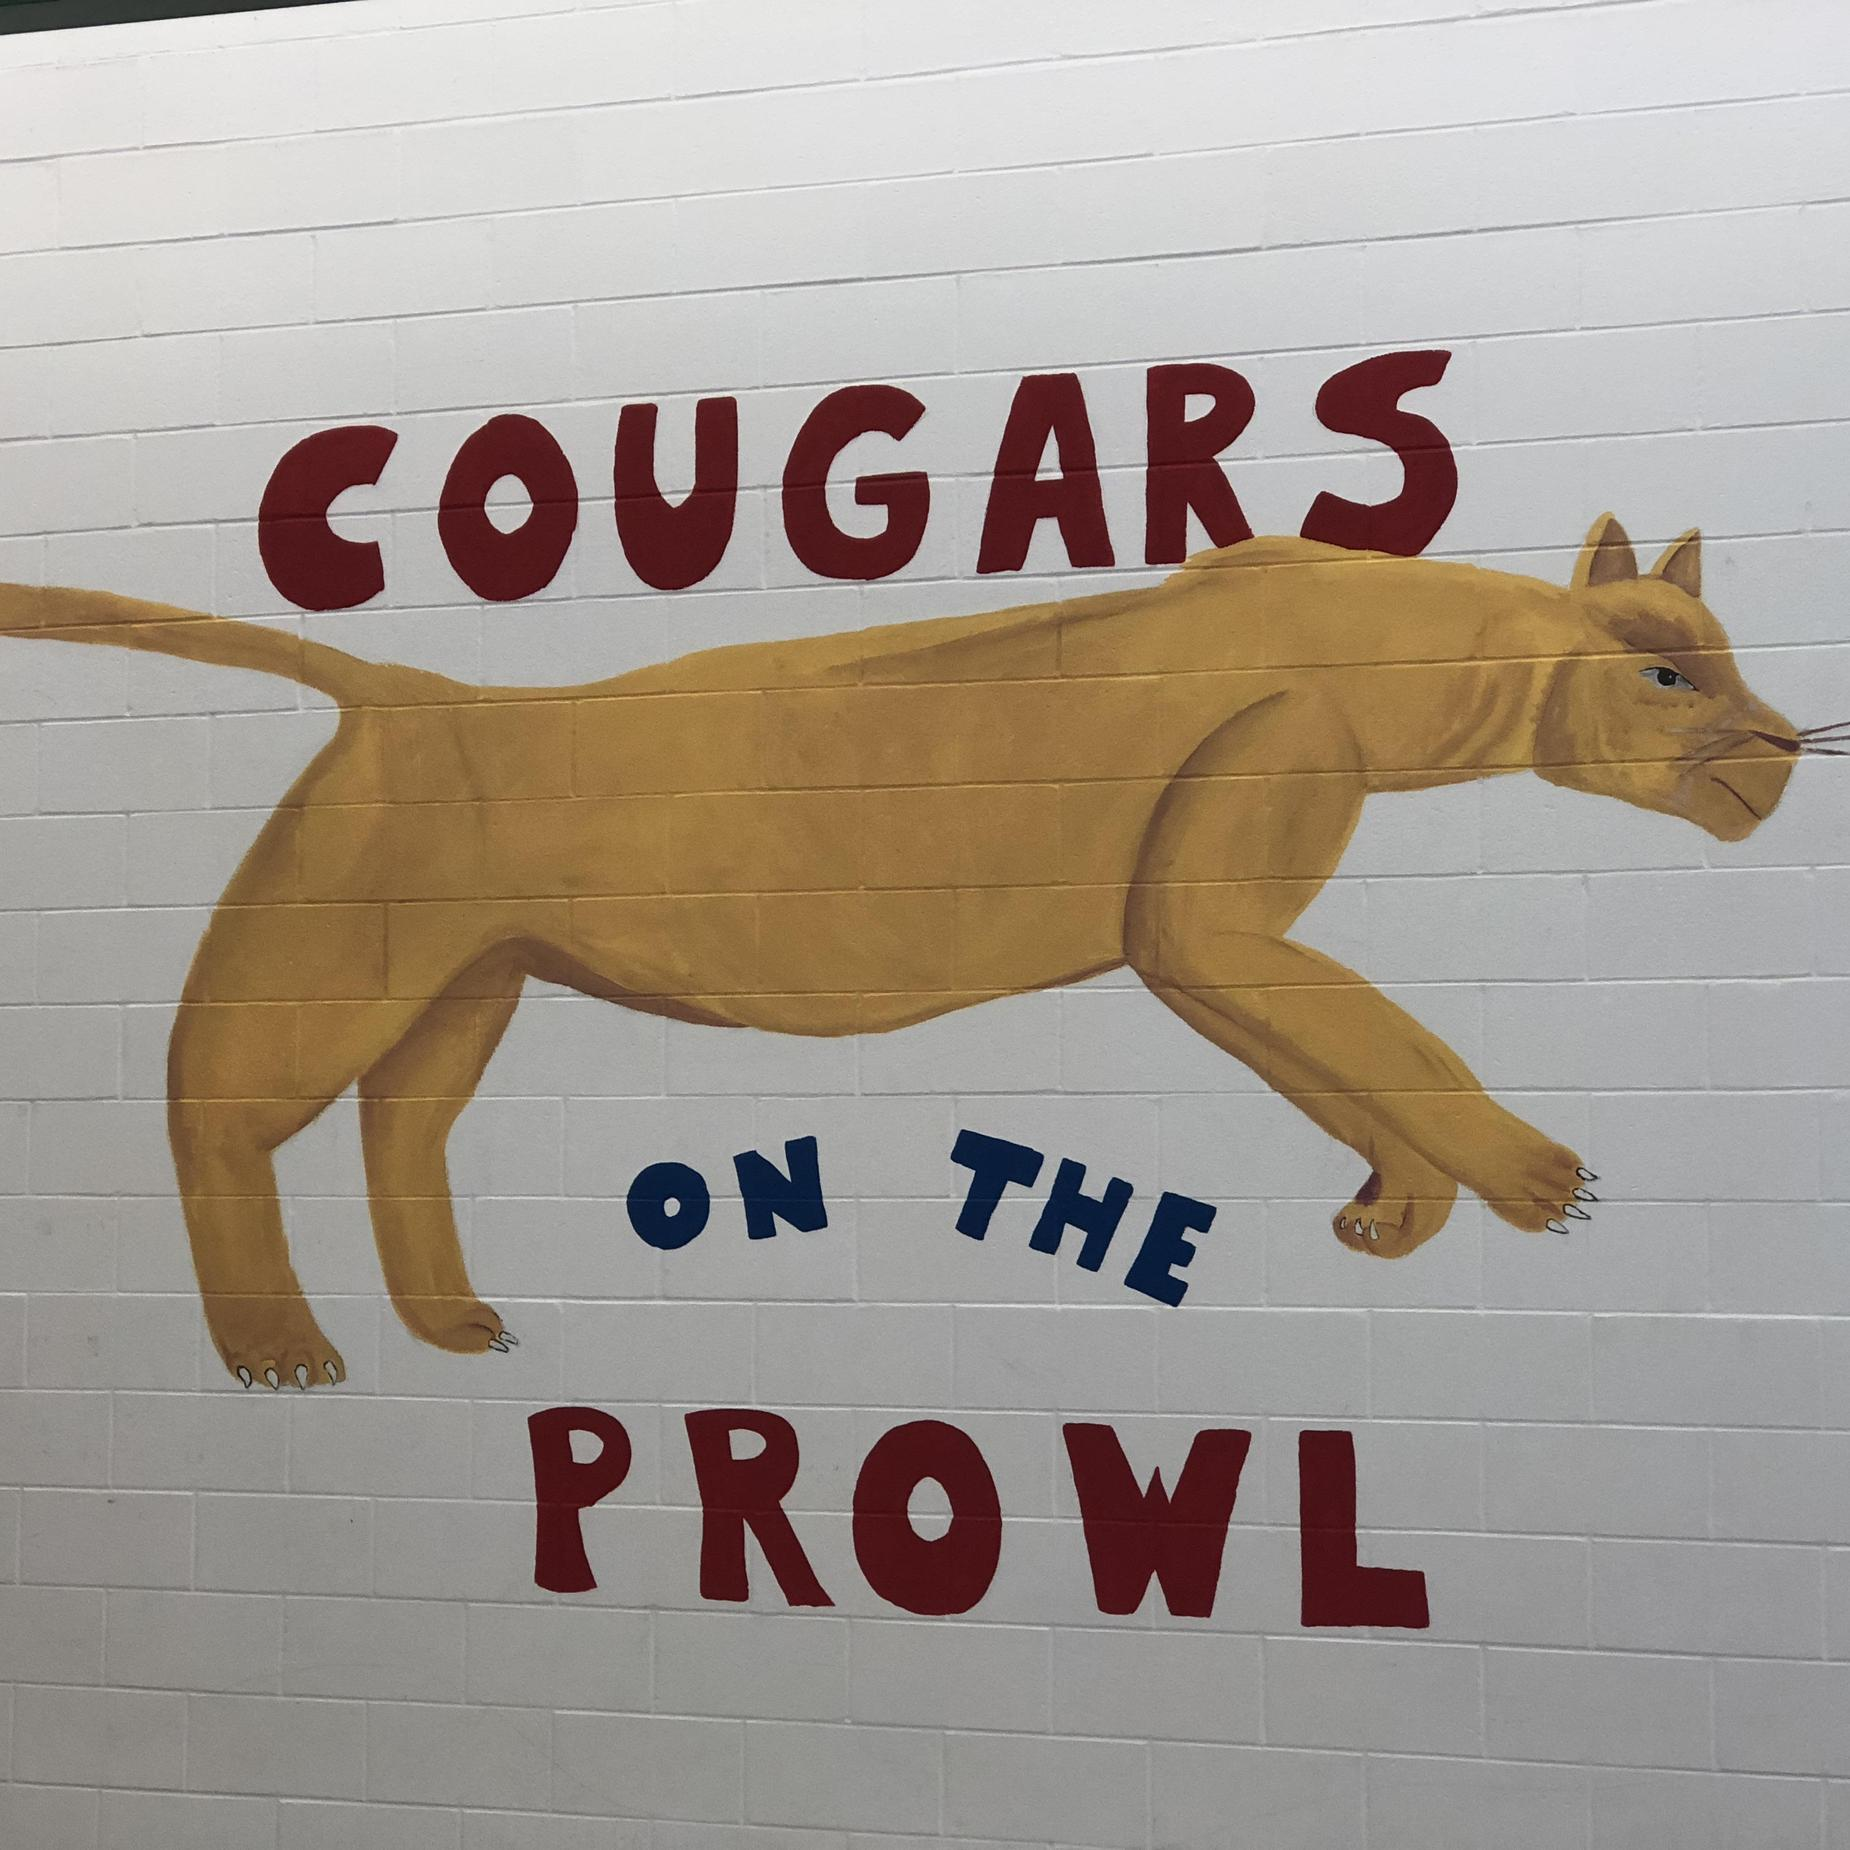 Speight cougar on the wall